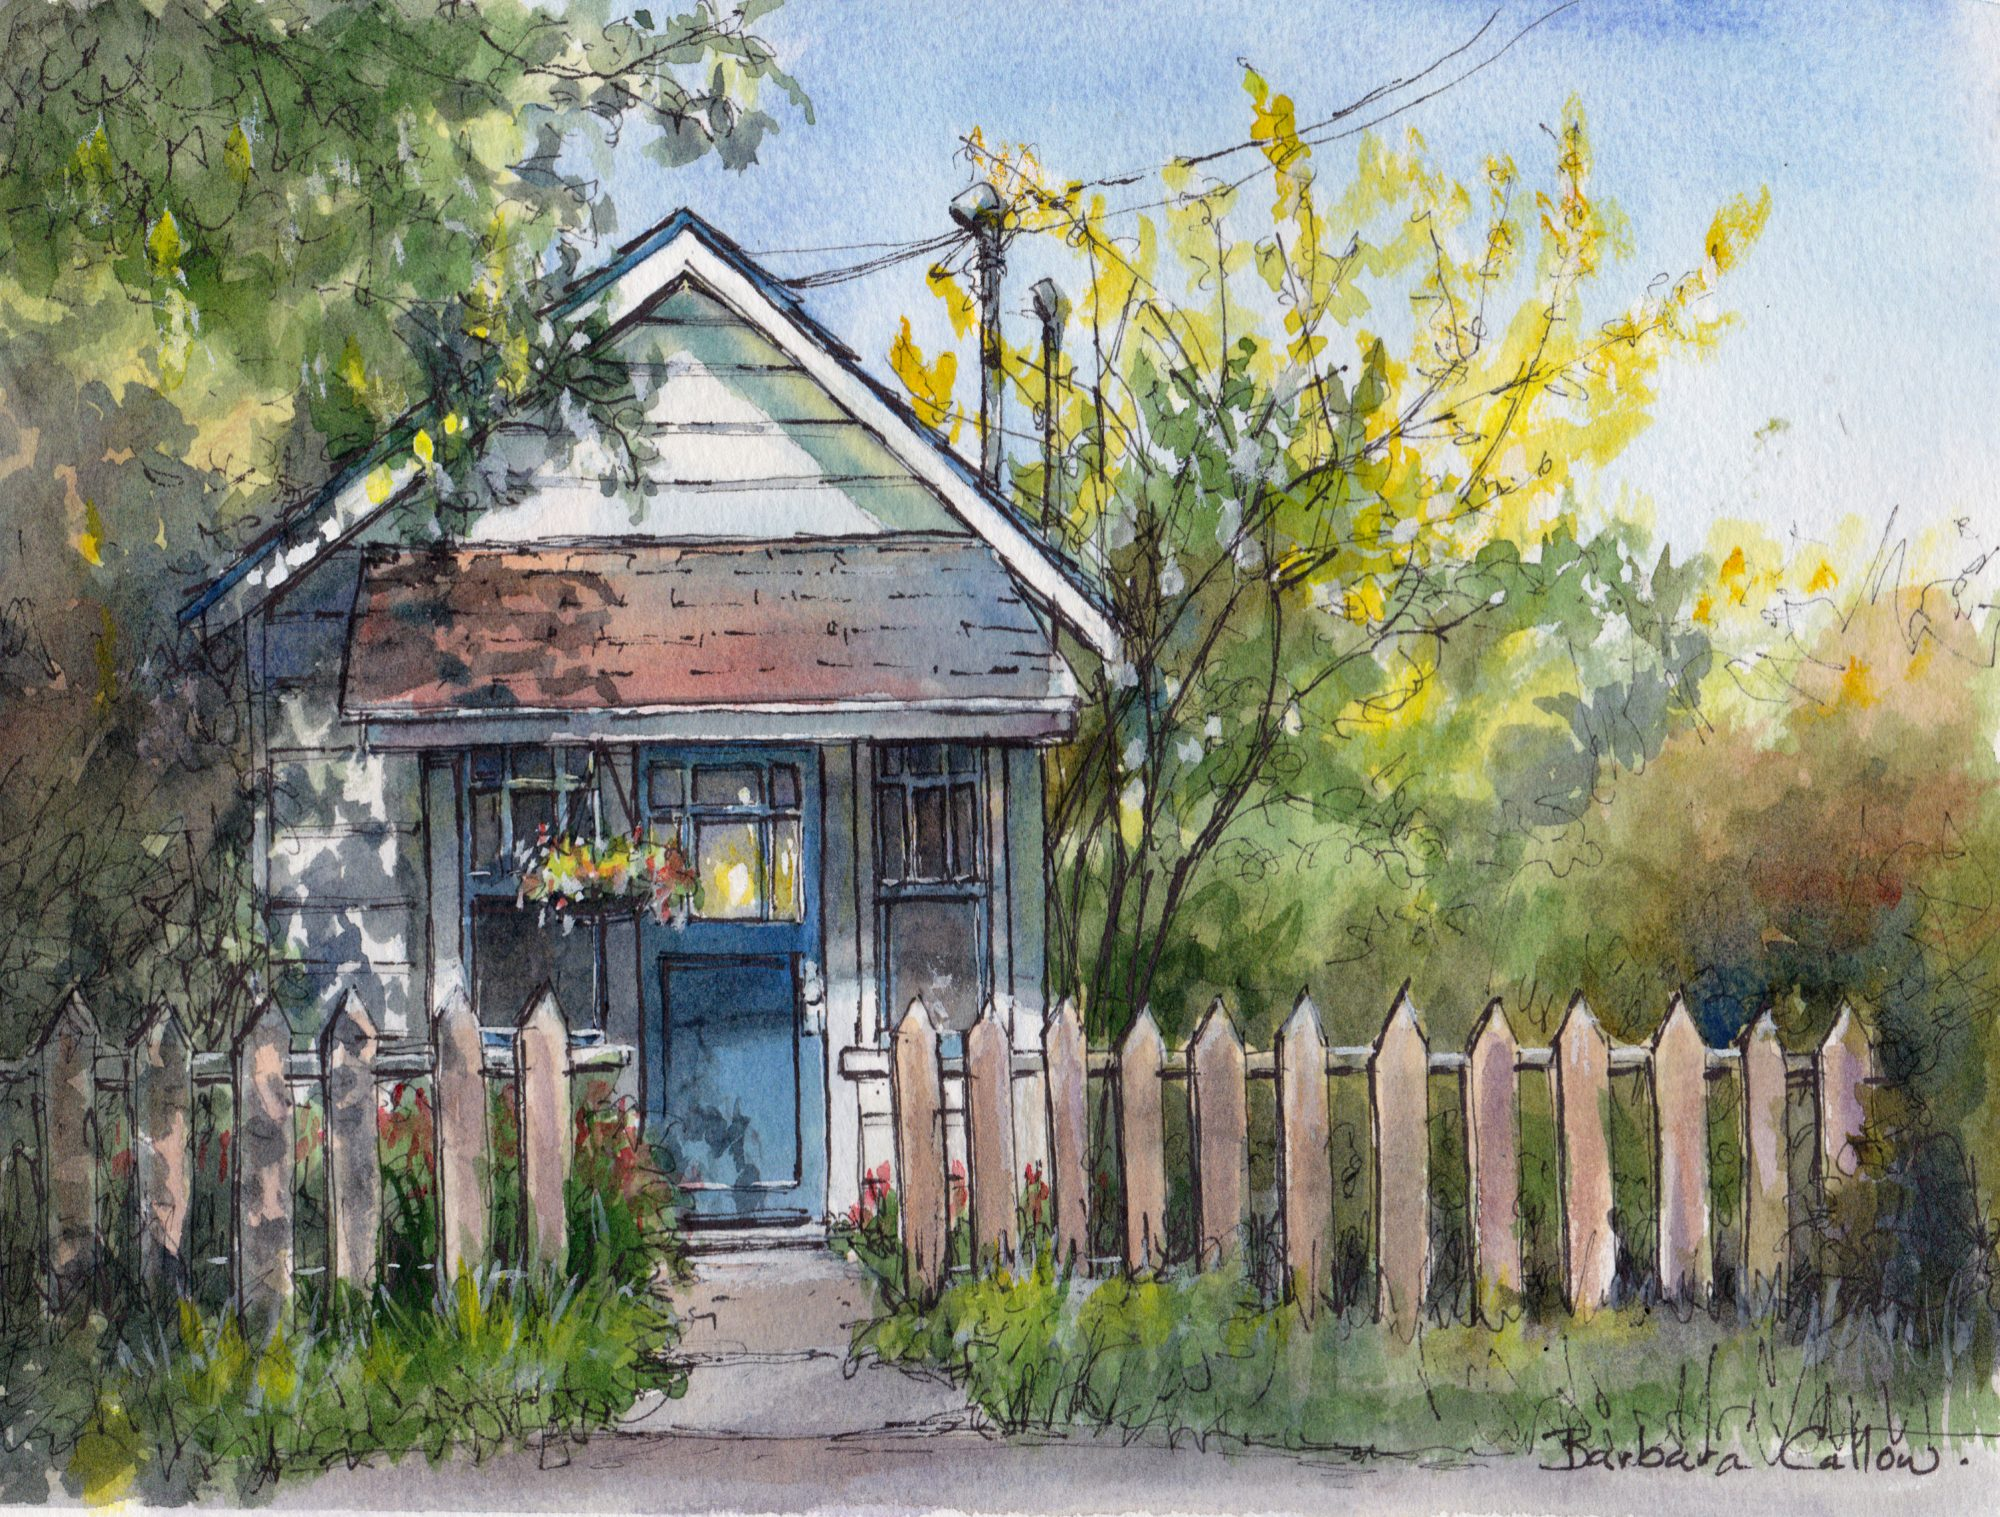 Watercolour and Ink Workshop with Barbara Callow